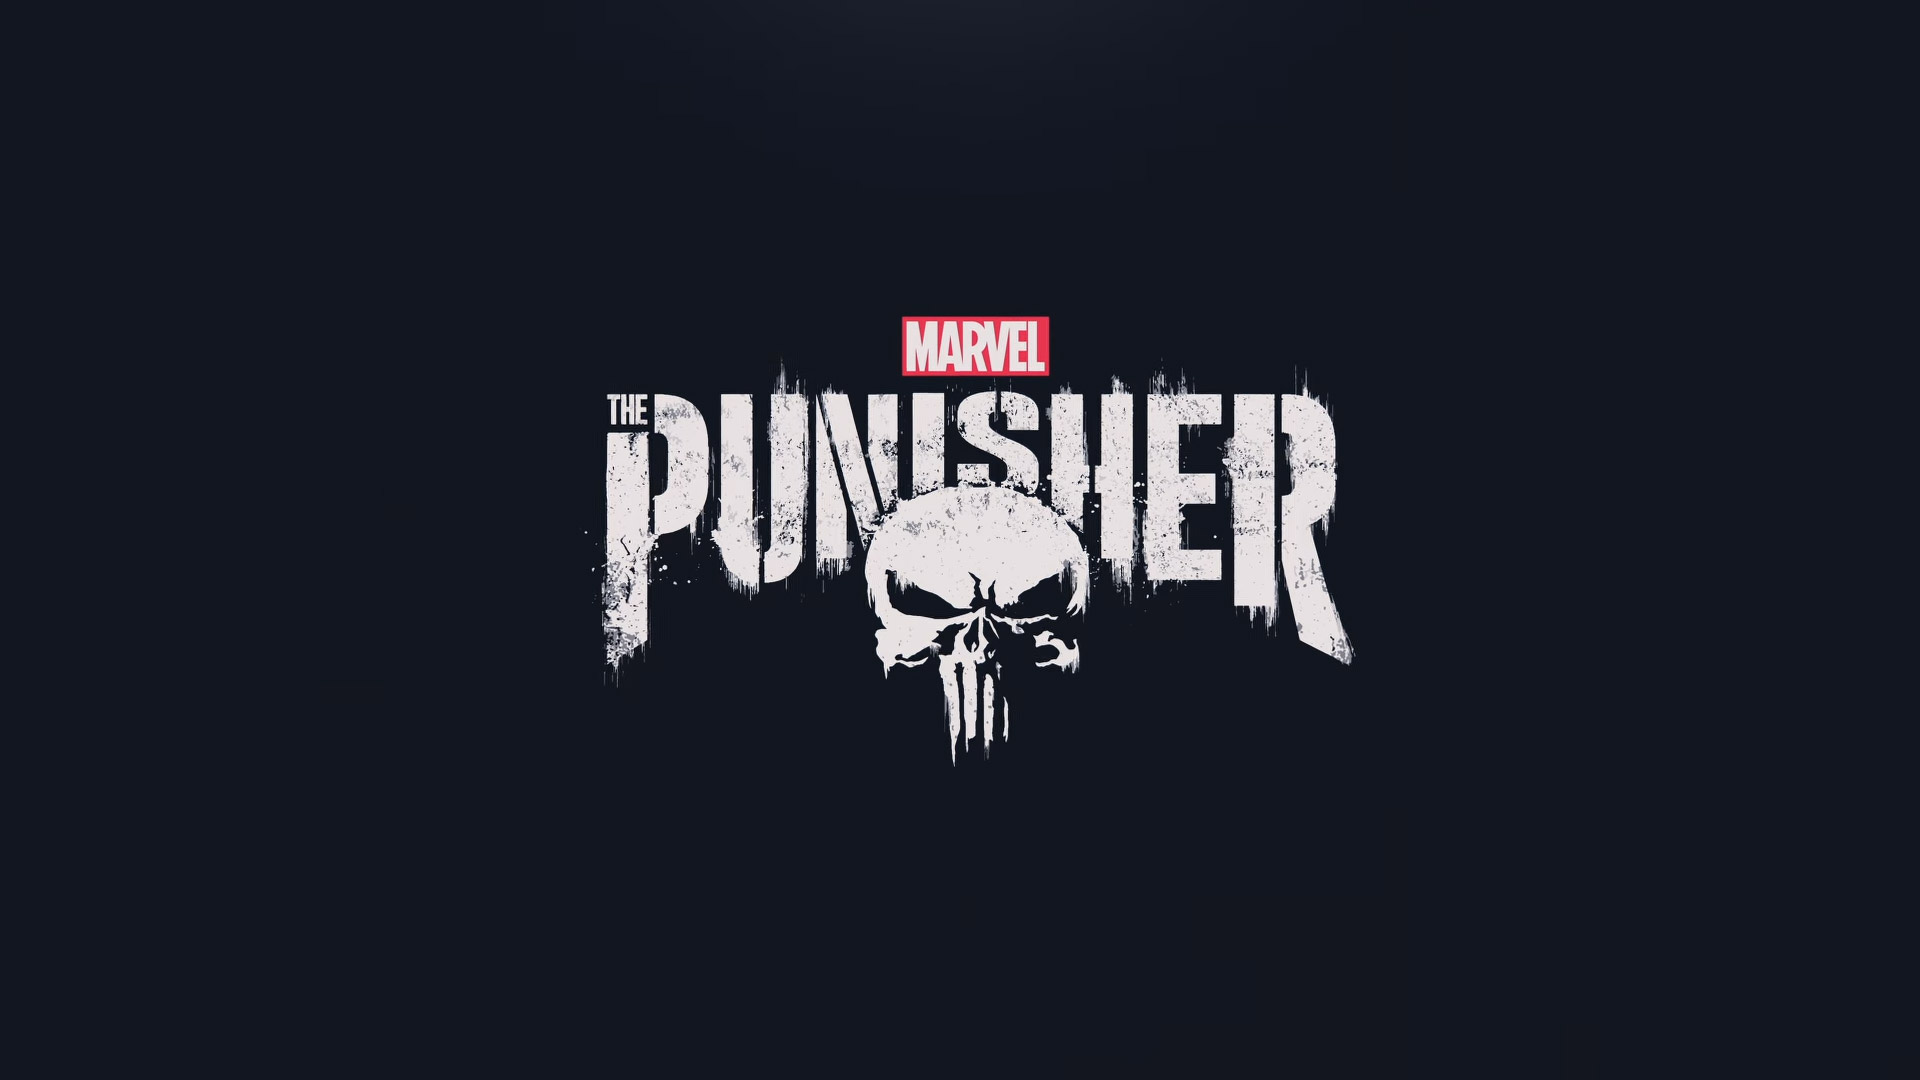 The Punisher 2017 Hd Logo Hd Tv Shows 4k Wallpapers Images